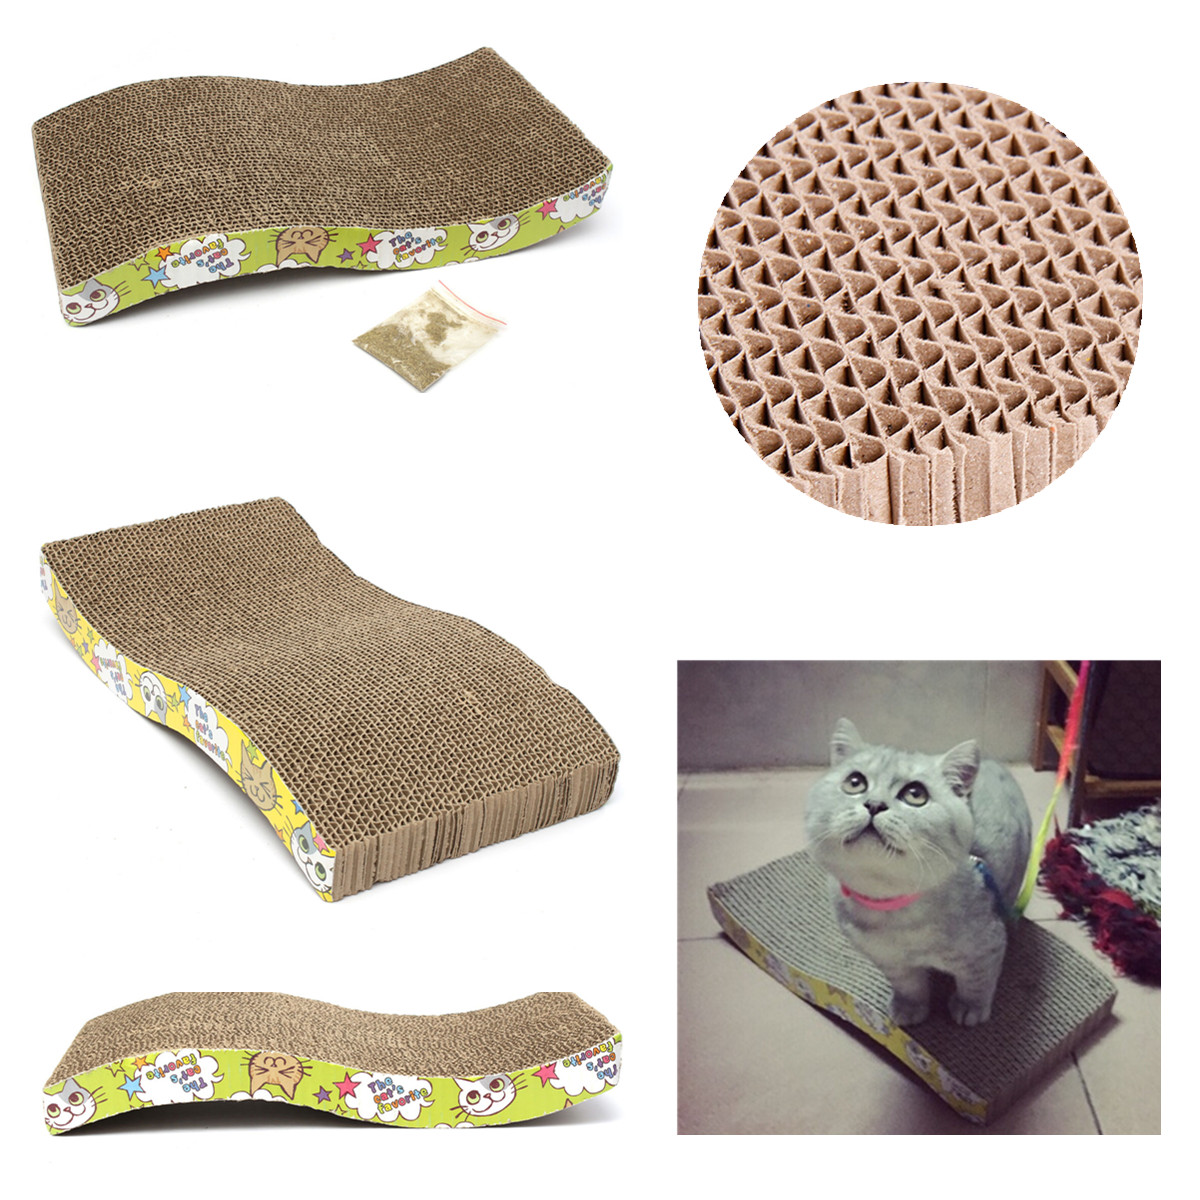 Emery Cat Scratching Post New 201580619312 also Ourproduct additionally 16395986113455422 additionally Good Quality Glue On Nails besides 247943898. on cat nail file scratcher